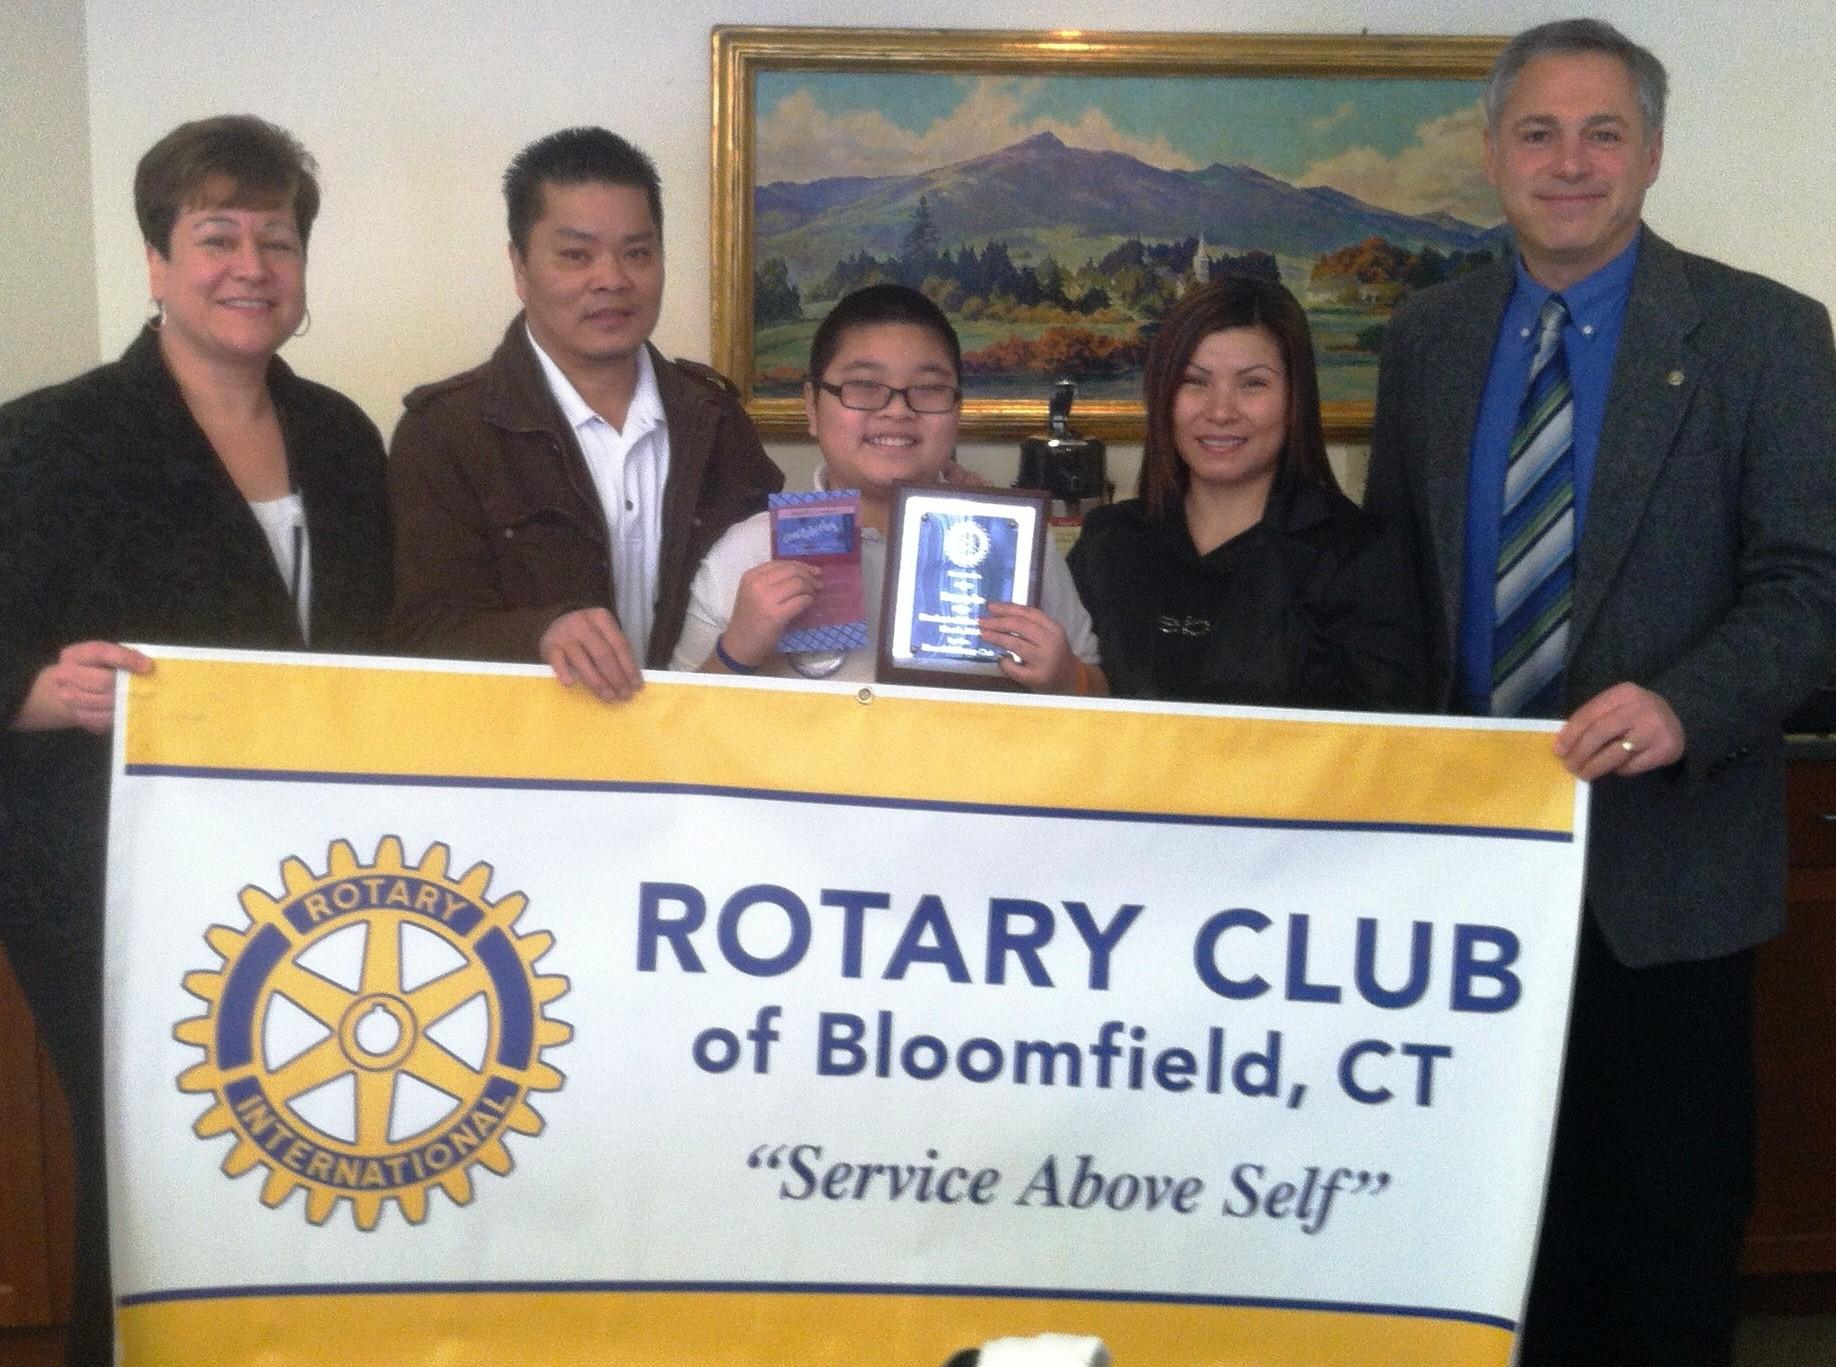 From left to right: Tracy Youngberg, principal Carmen Arace Intermediate School; Lua Van Dang, Danny's father; Danny Le; Christina Le, Danny's mother; Mark Weisman, president Bloomfield Rotary.